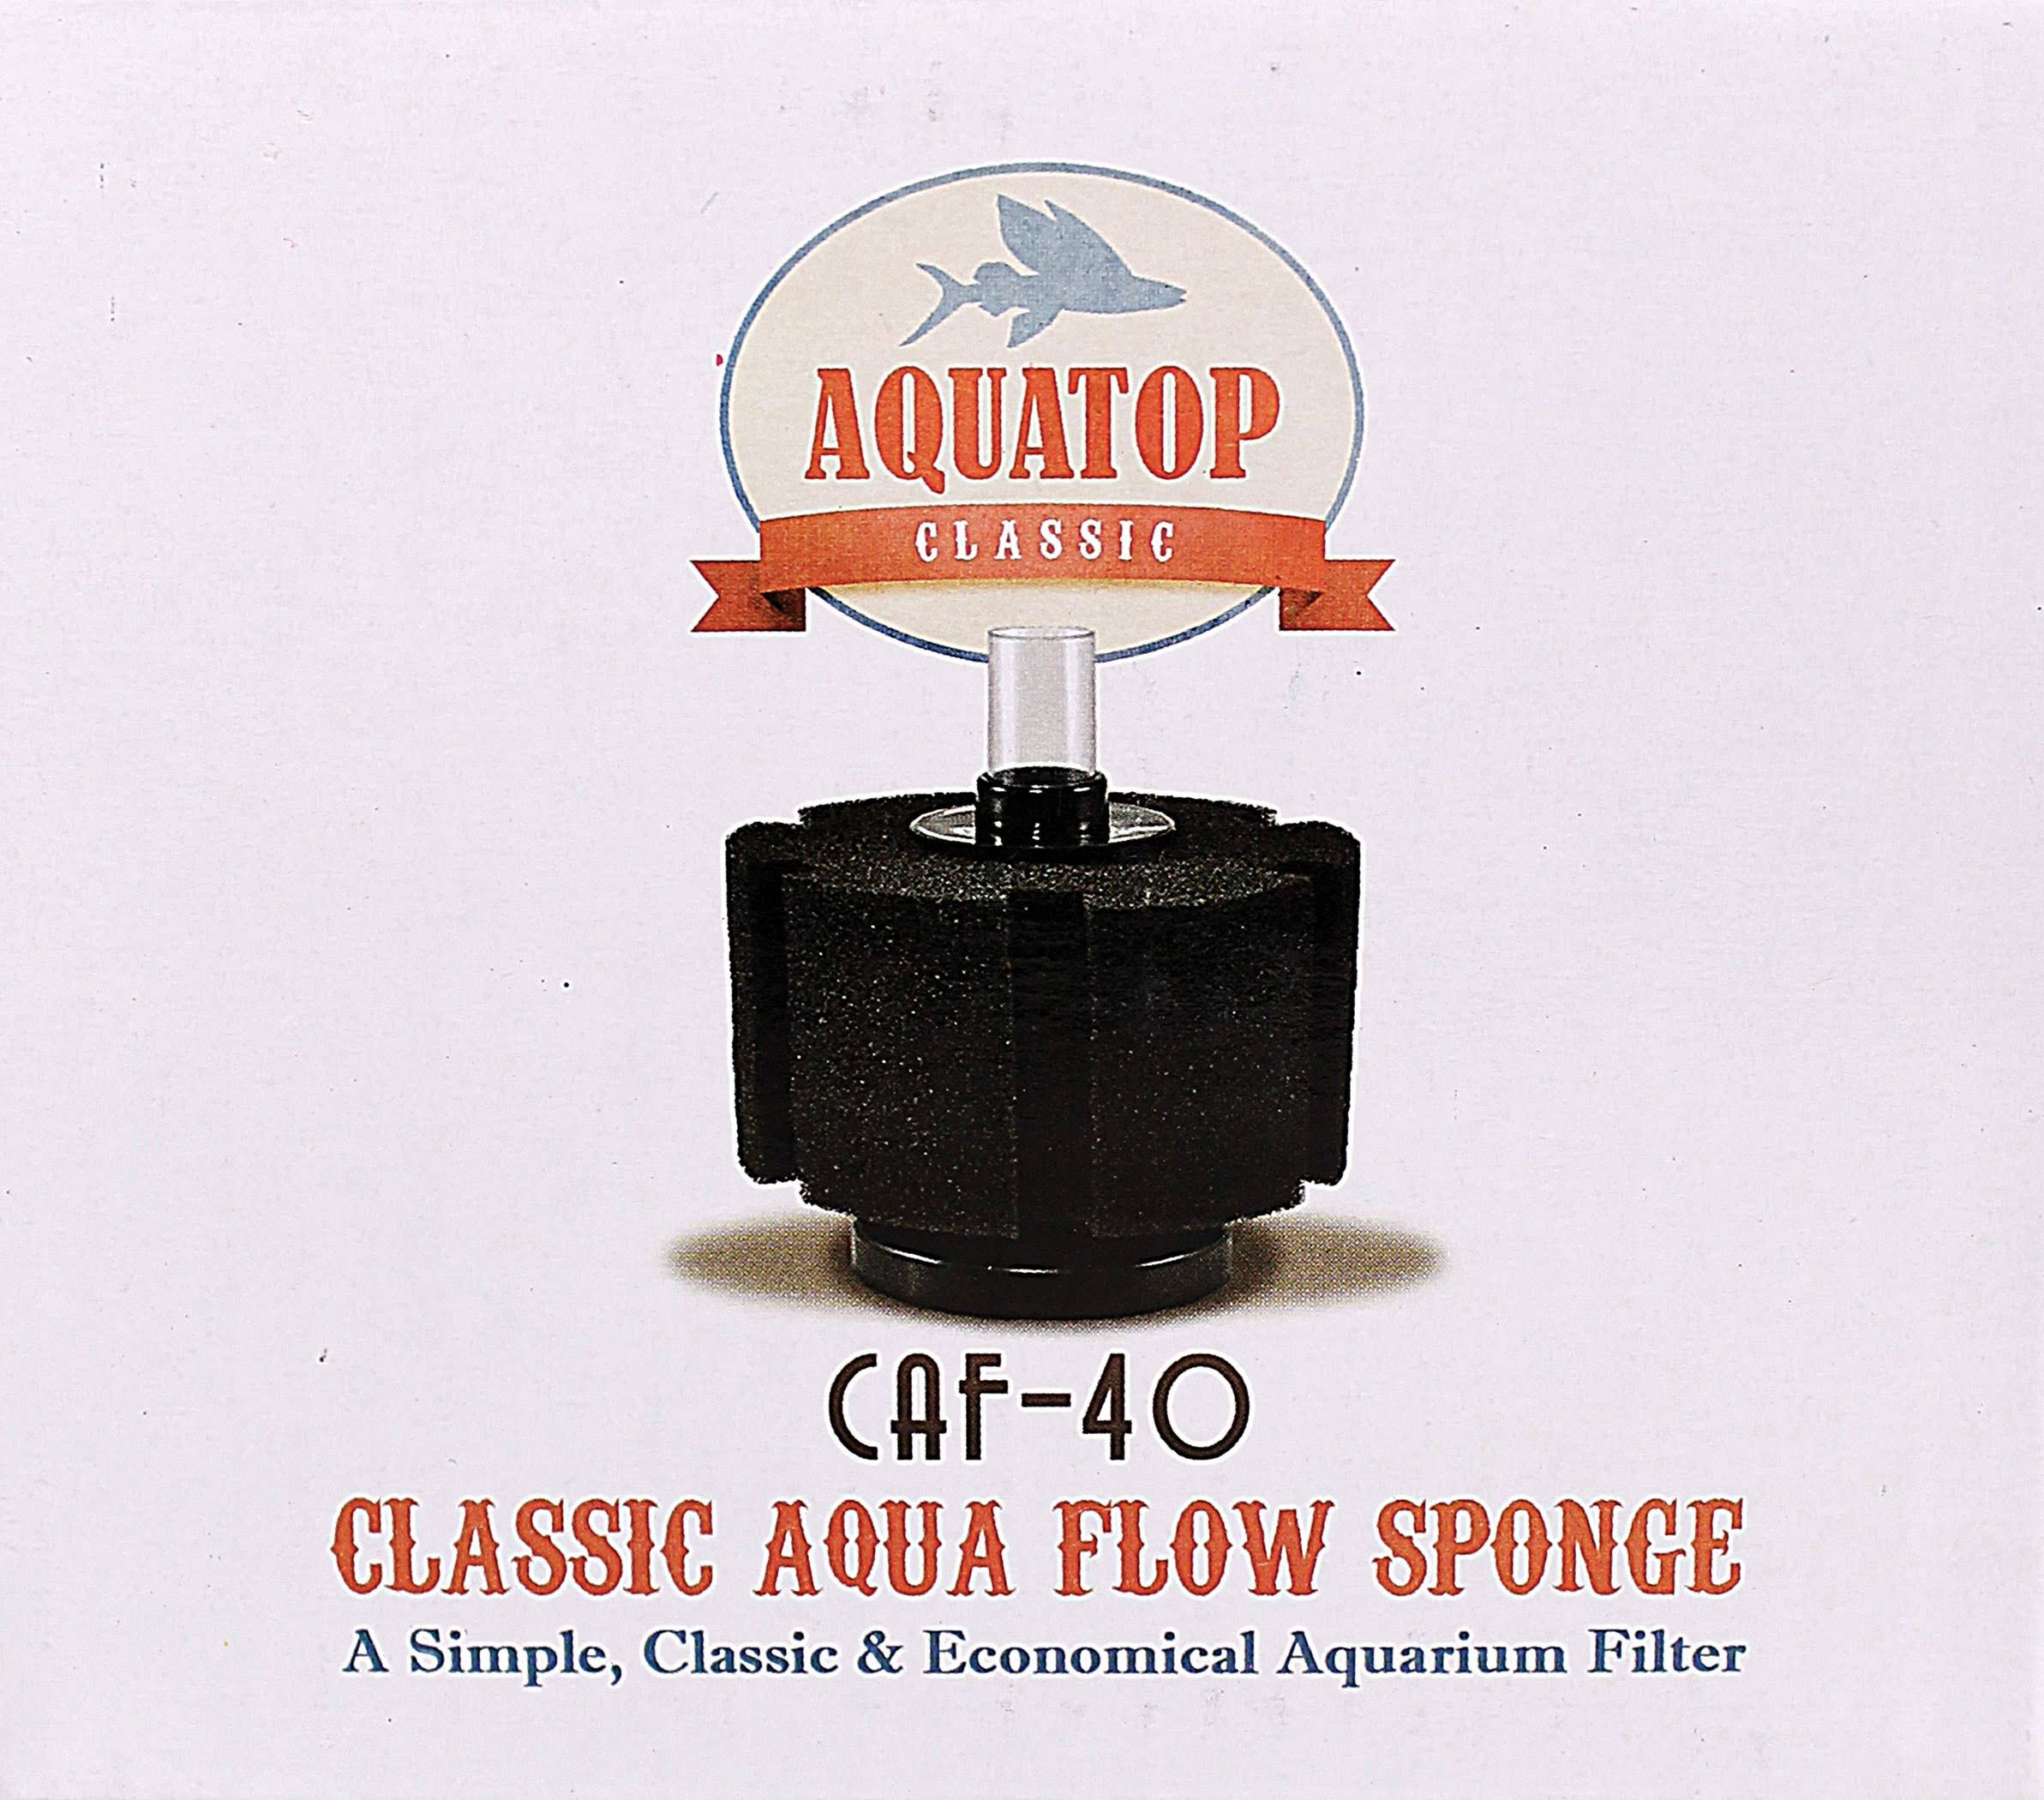 Aquatop Aquatic Supplies ClassicAqua Flow Sponge Filter